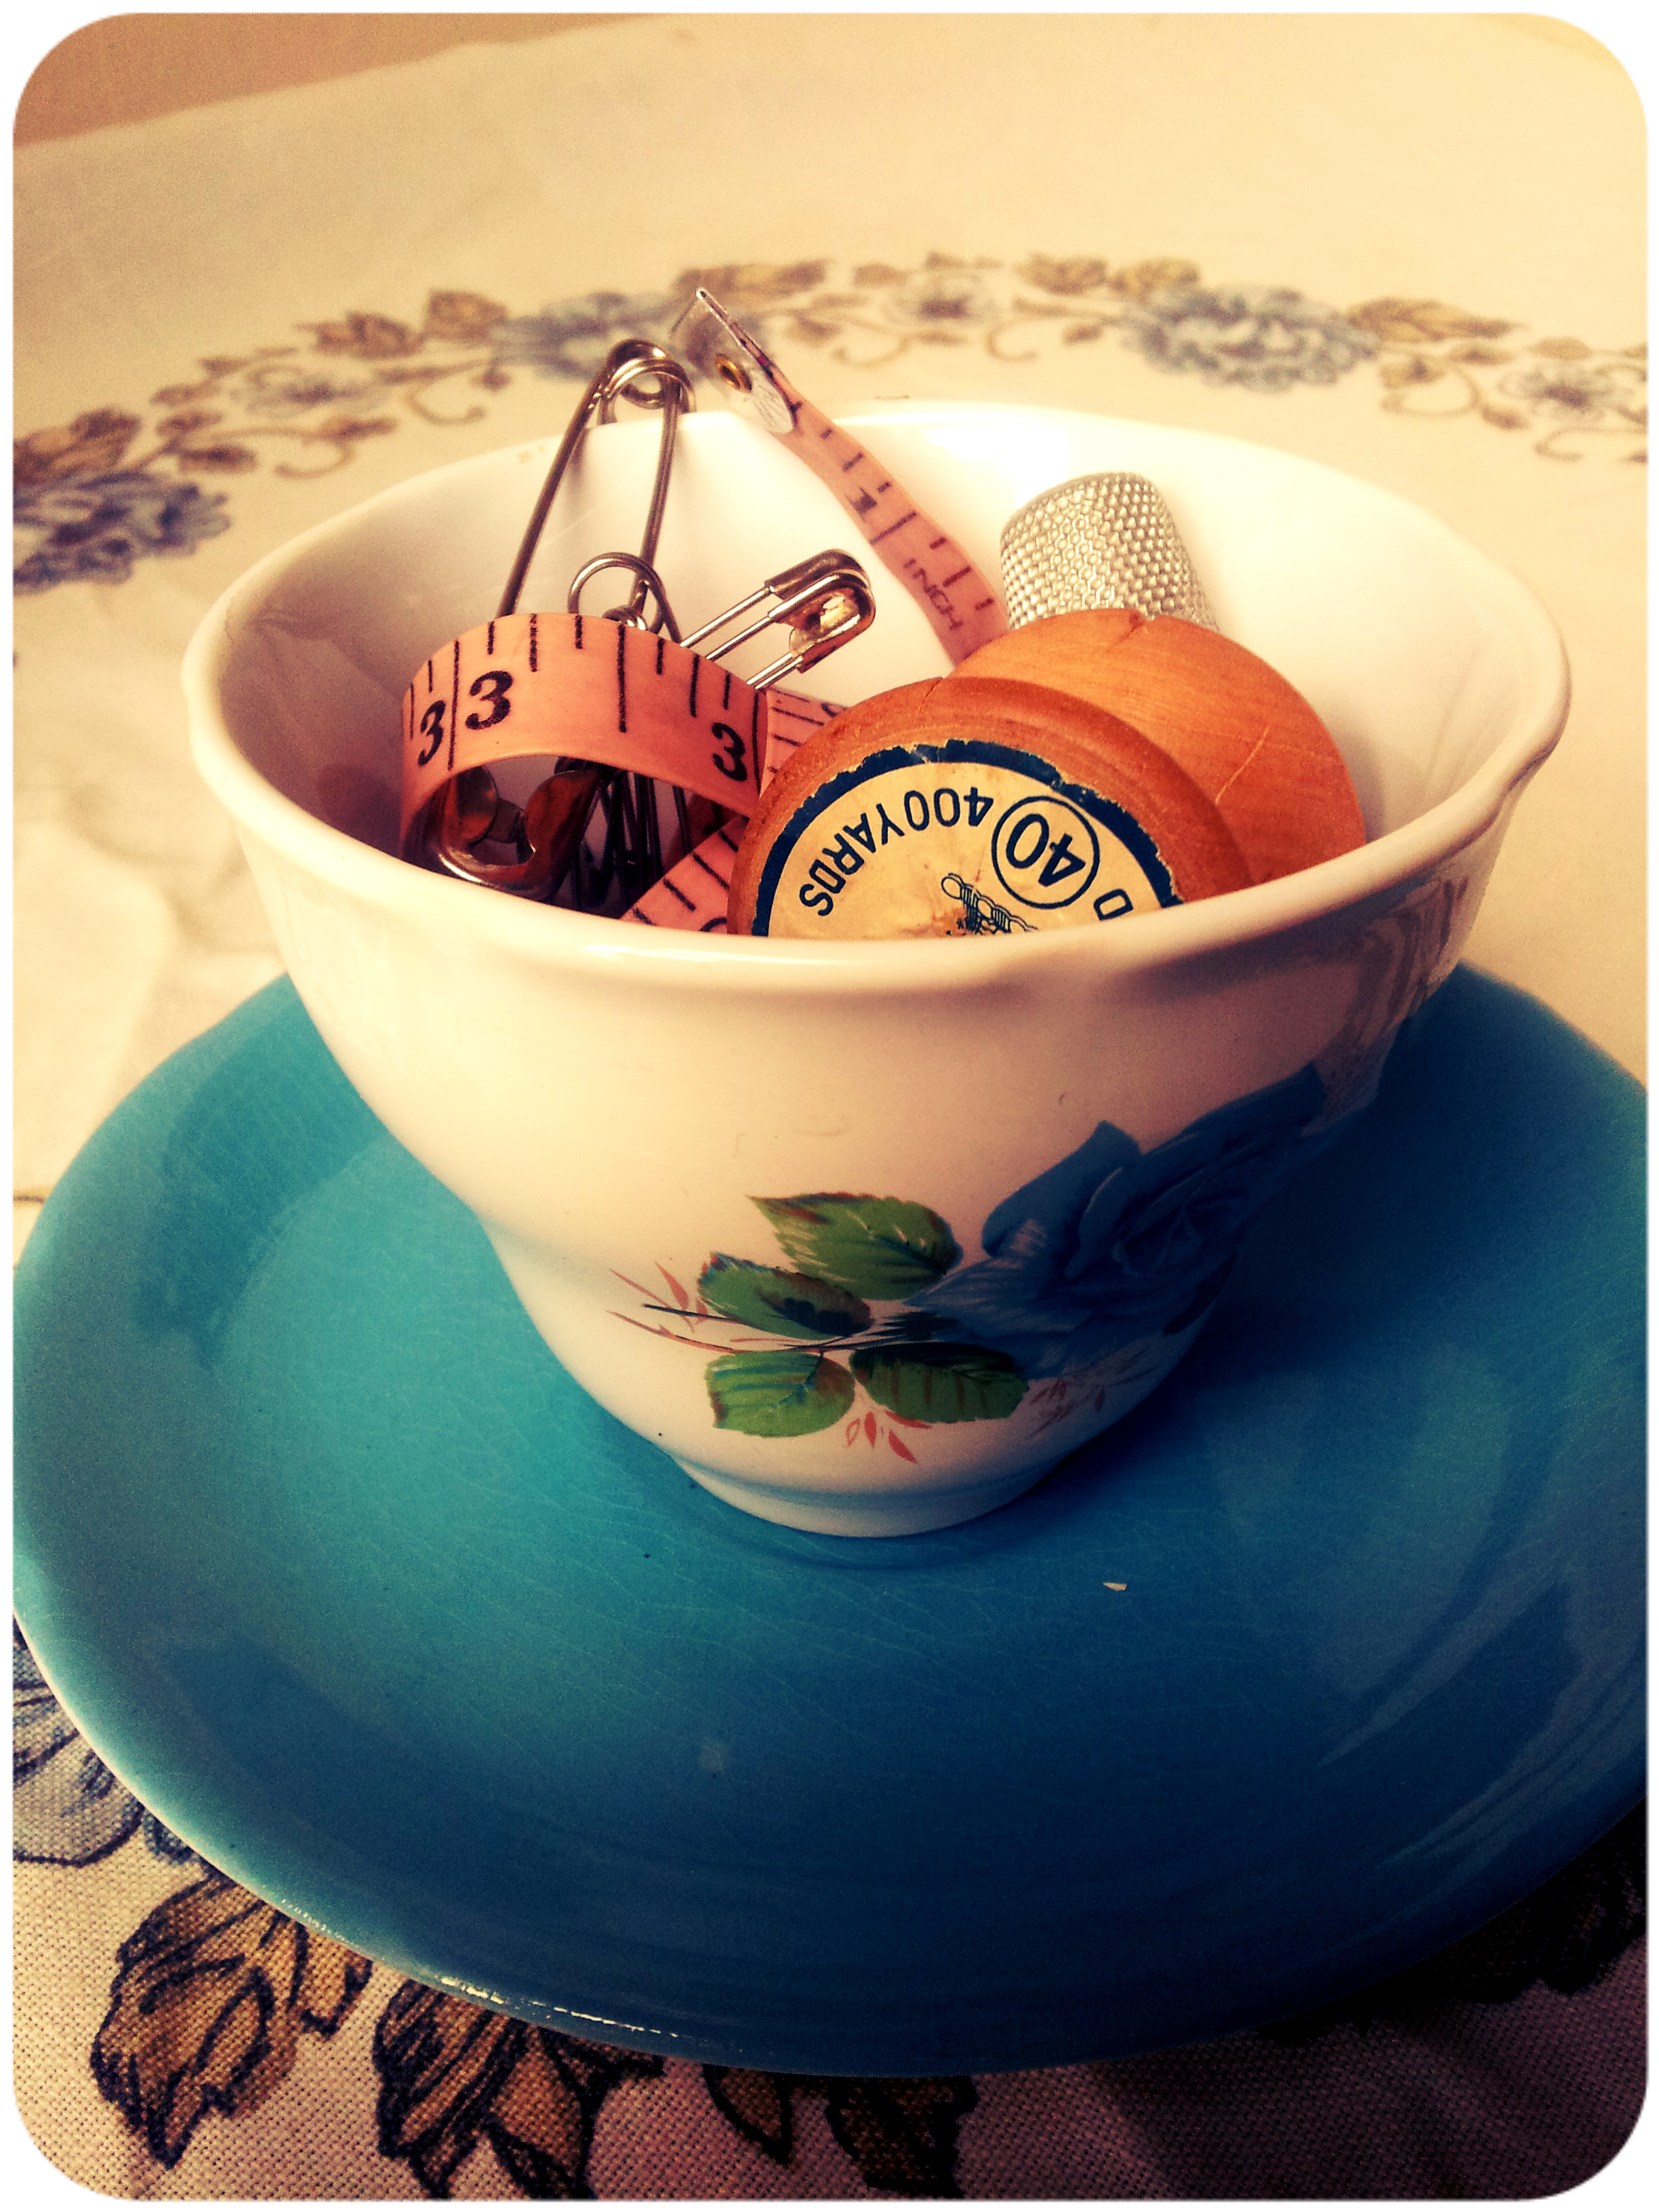 Ten new uses for old teacups